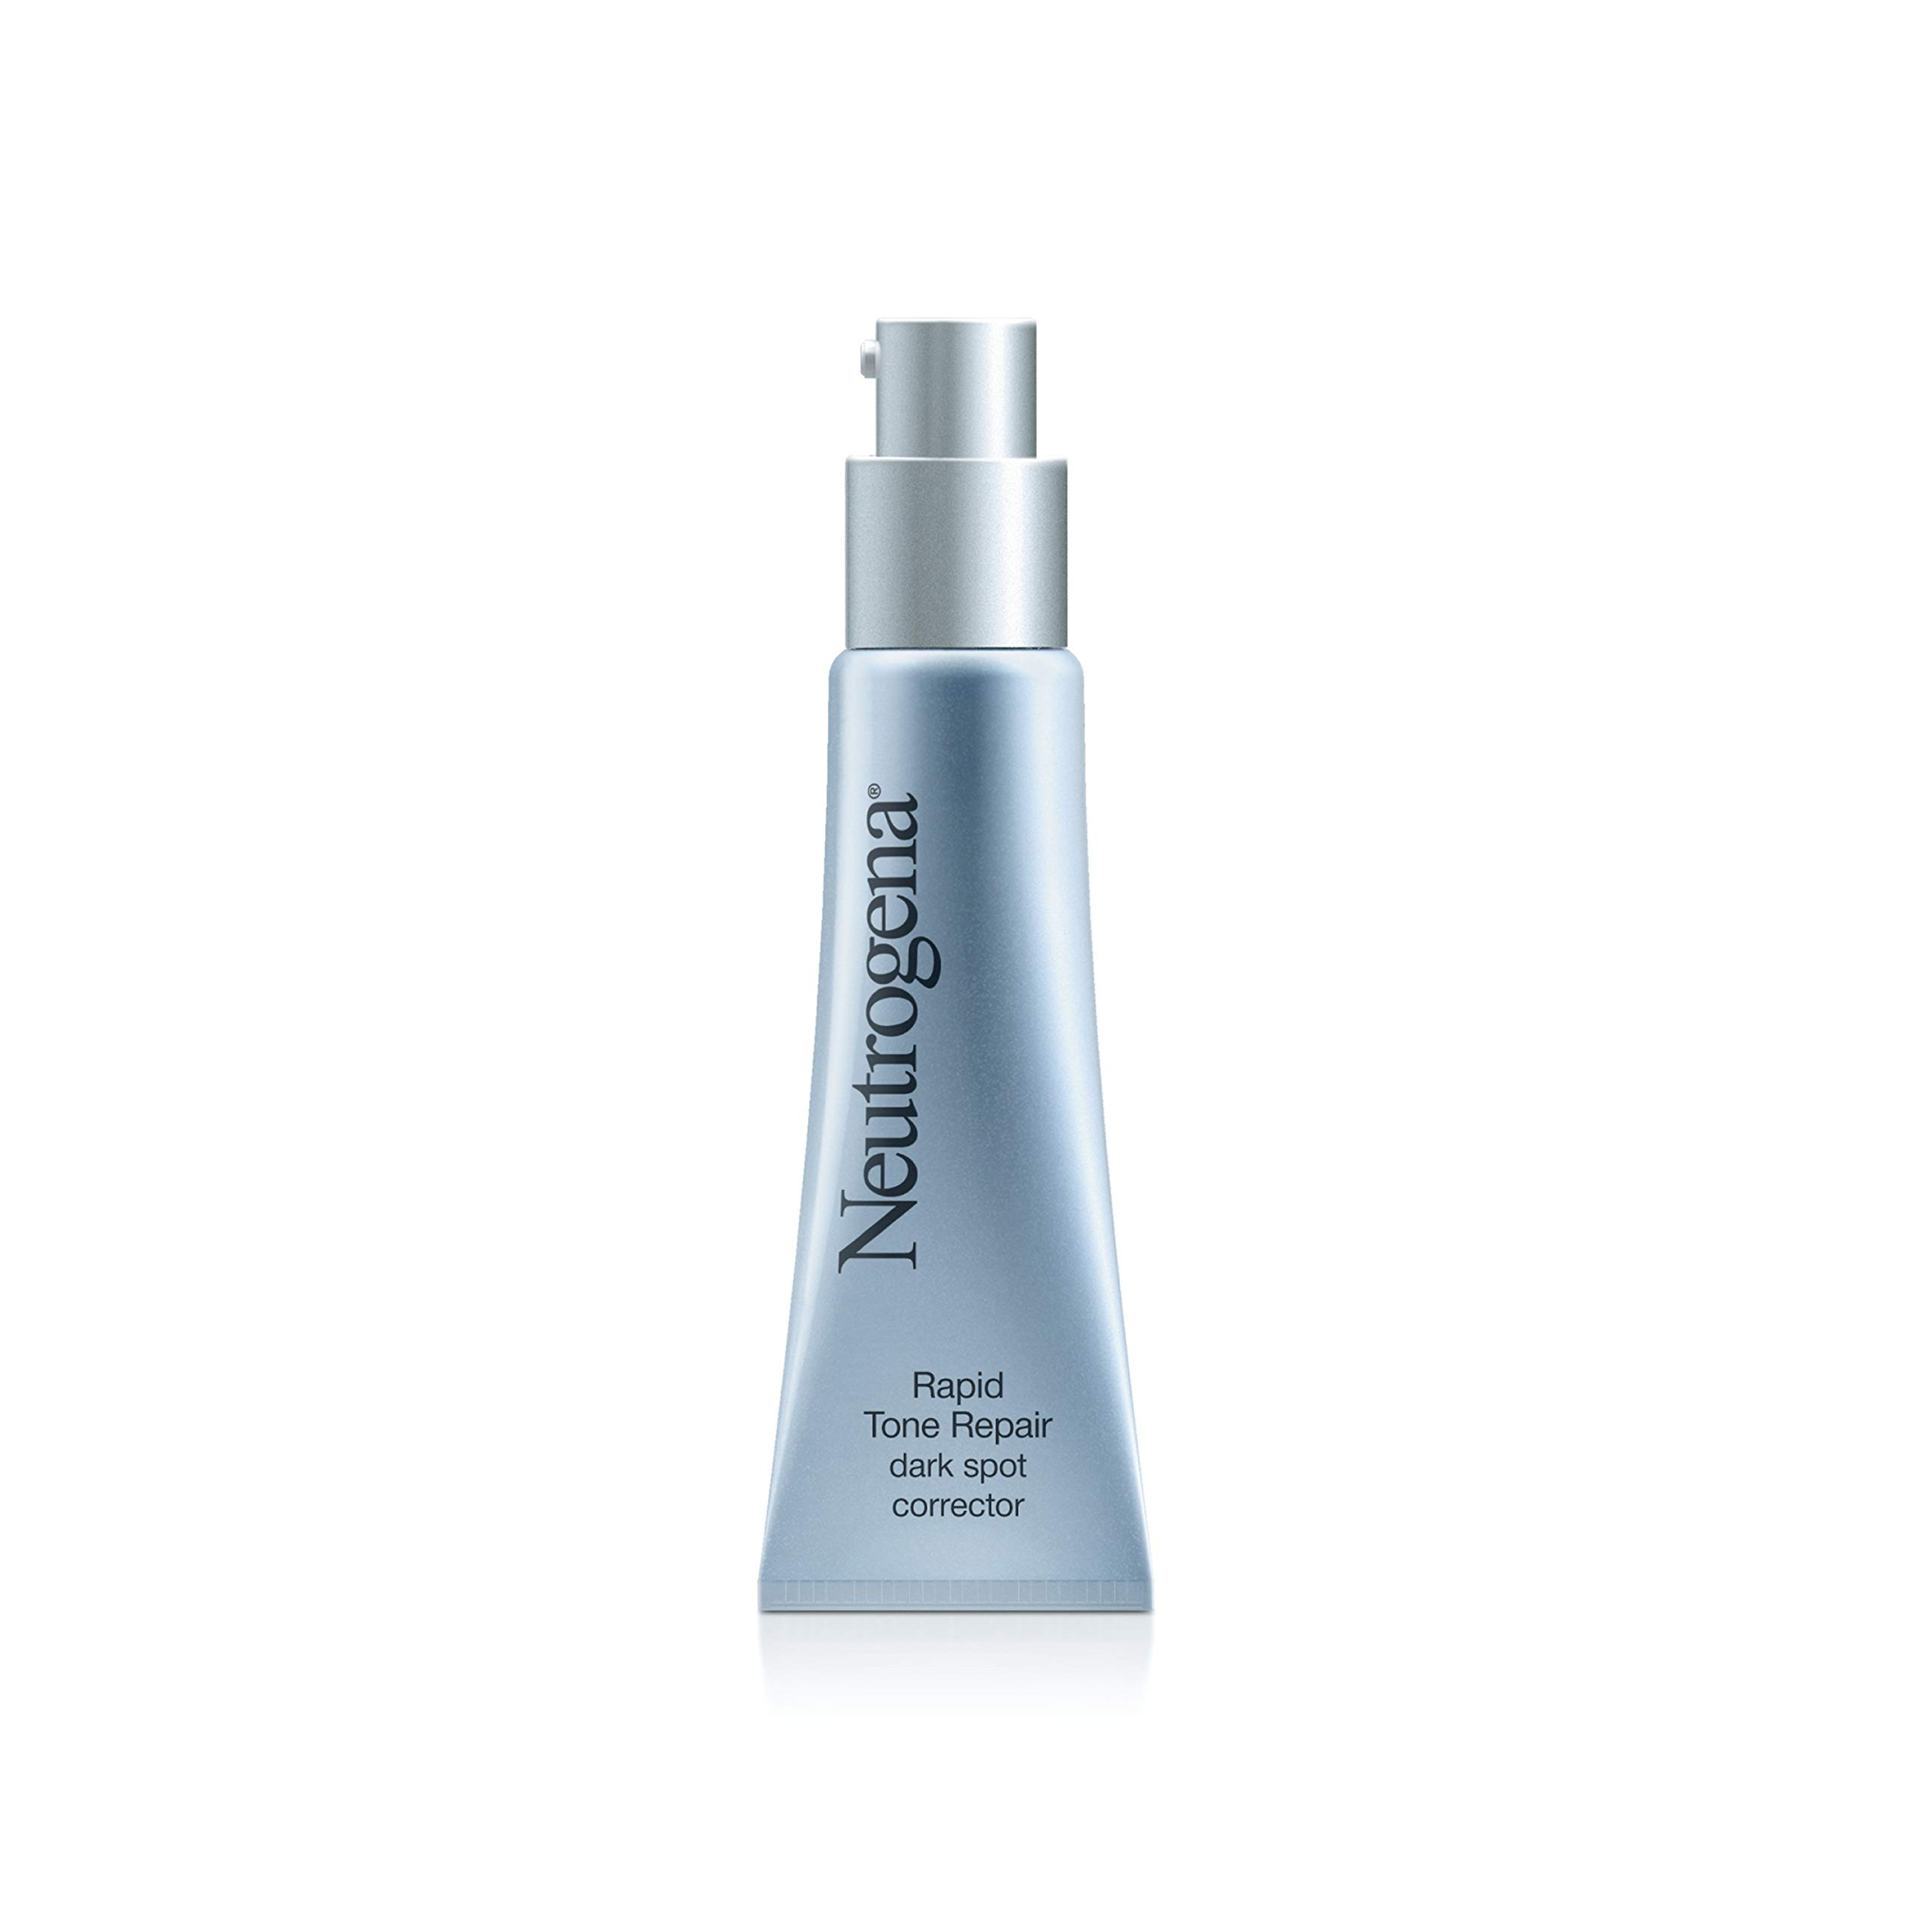 Neutrogena Rapid Tone Repair Dark Spot Corrector for Face & Hyaluronic Acid, Retinol, Vitamin C Serum -  Anti Wrinkle Face Serum & Acne Spot Corrector with Hyaluronic Acid, Retinol & Vitamin C, 1 oz by Neutrogena